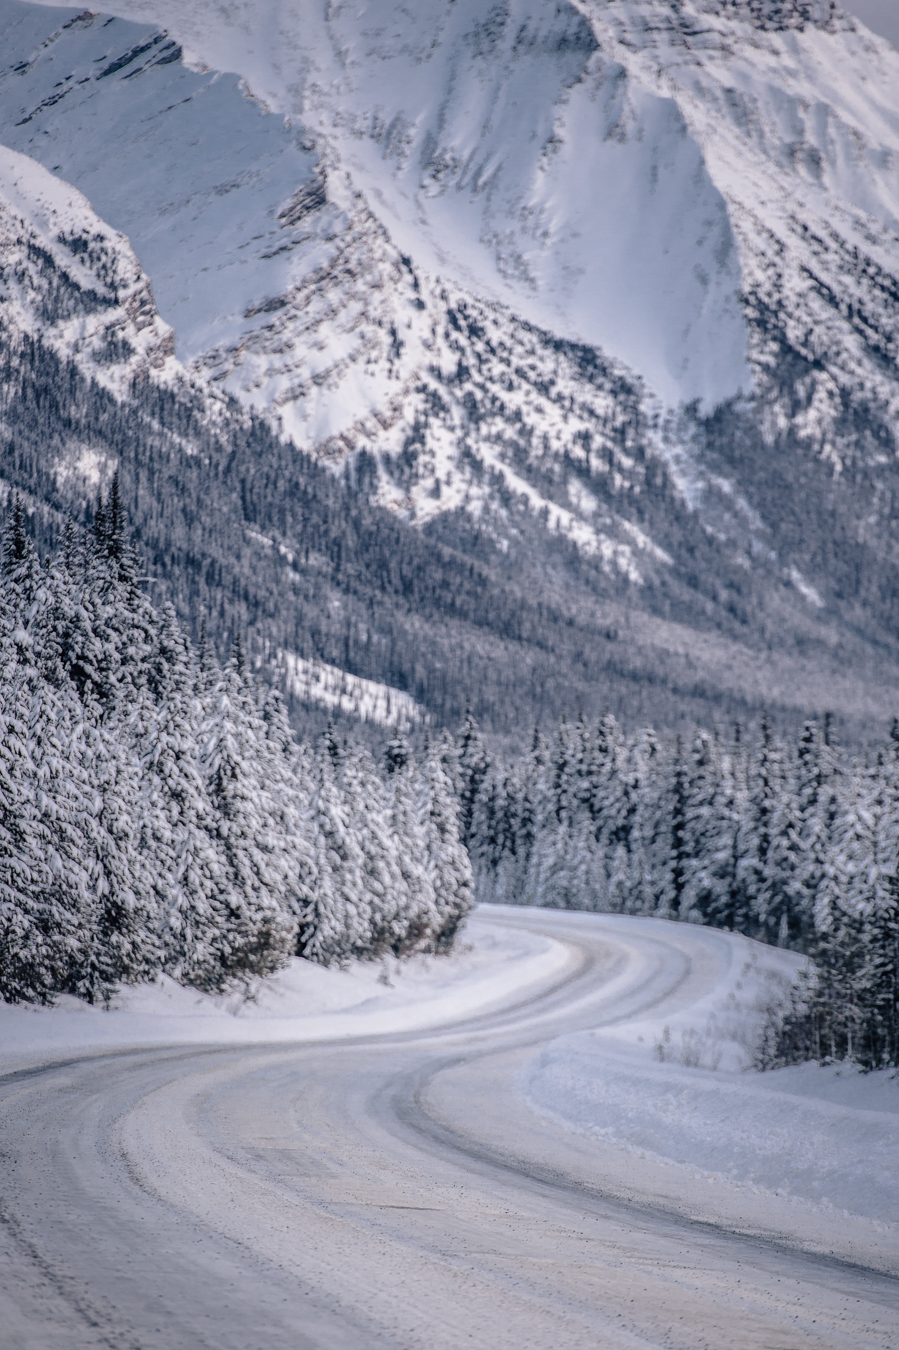 icefields-parkway-christian-frumolt-fotografie_web_small-194